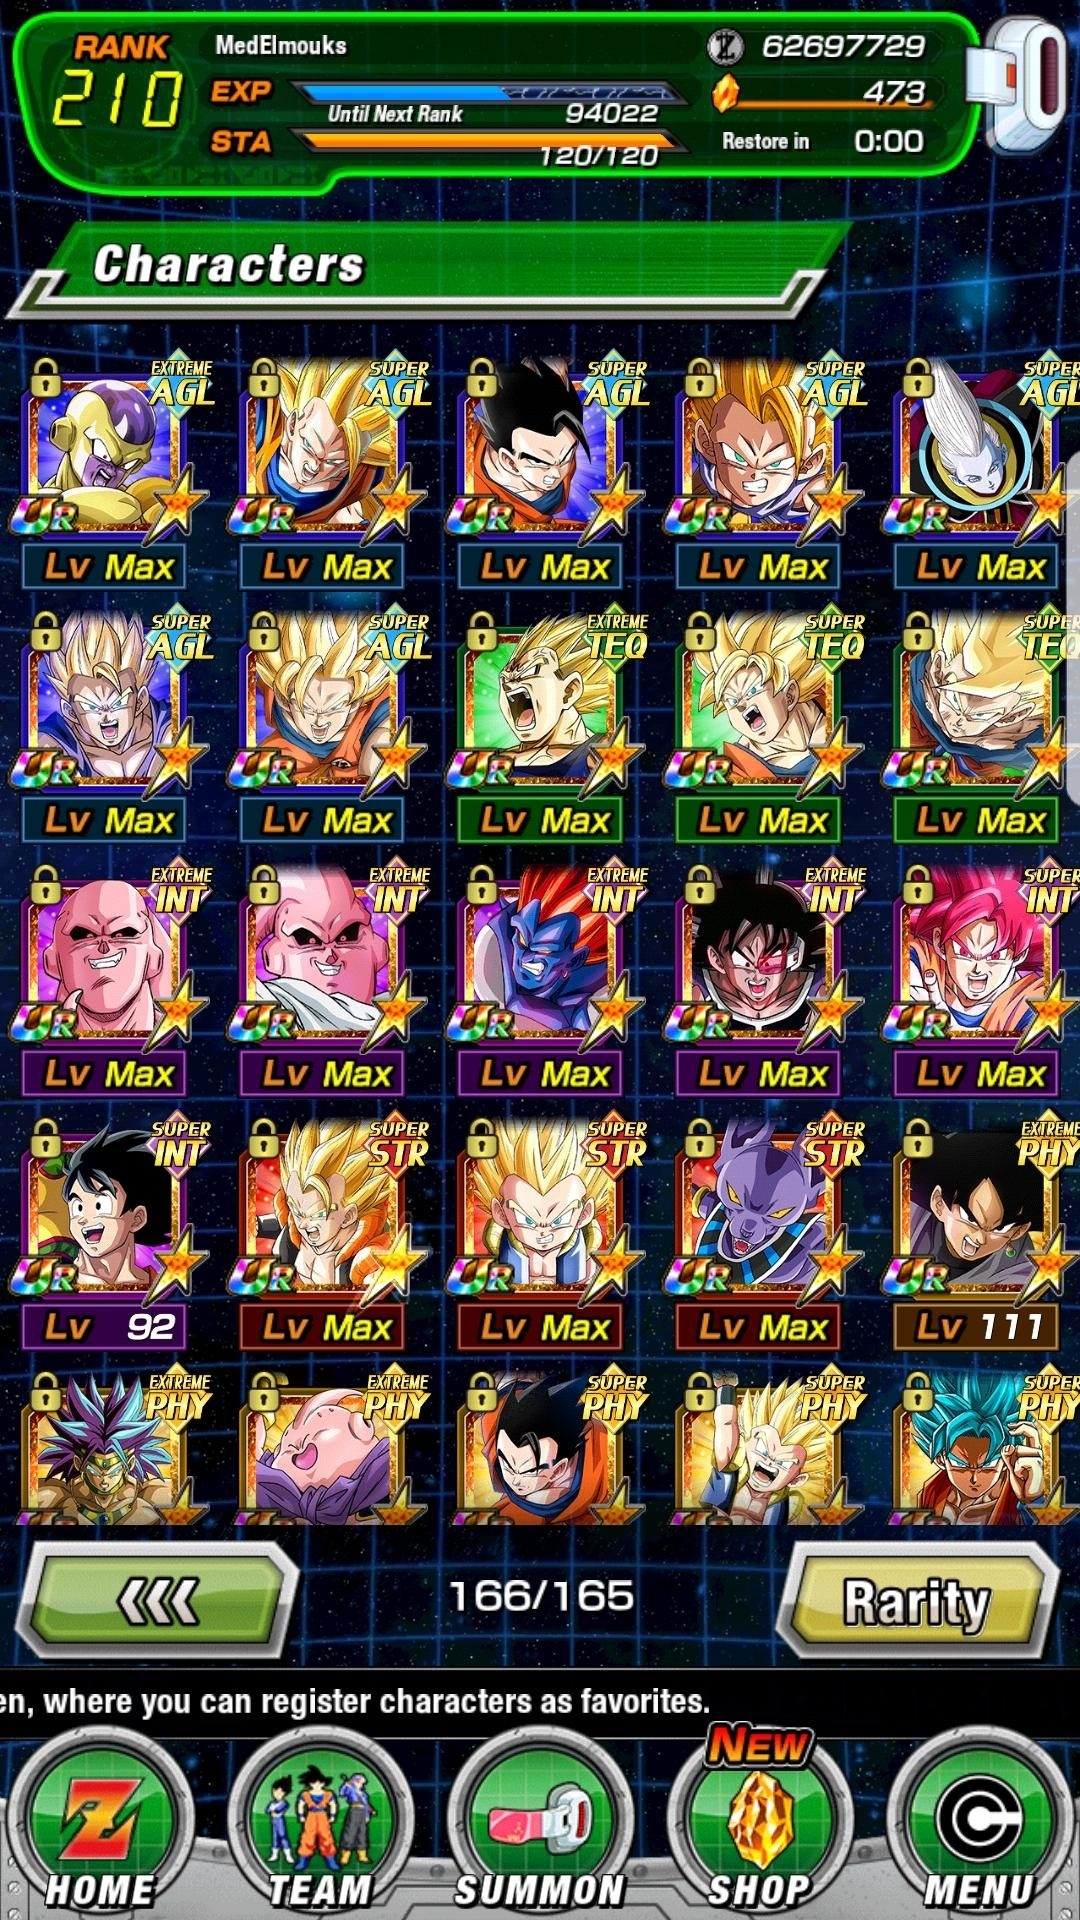 [GLB]Lvl 210 account with a lot of SSRs and 473 stones